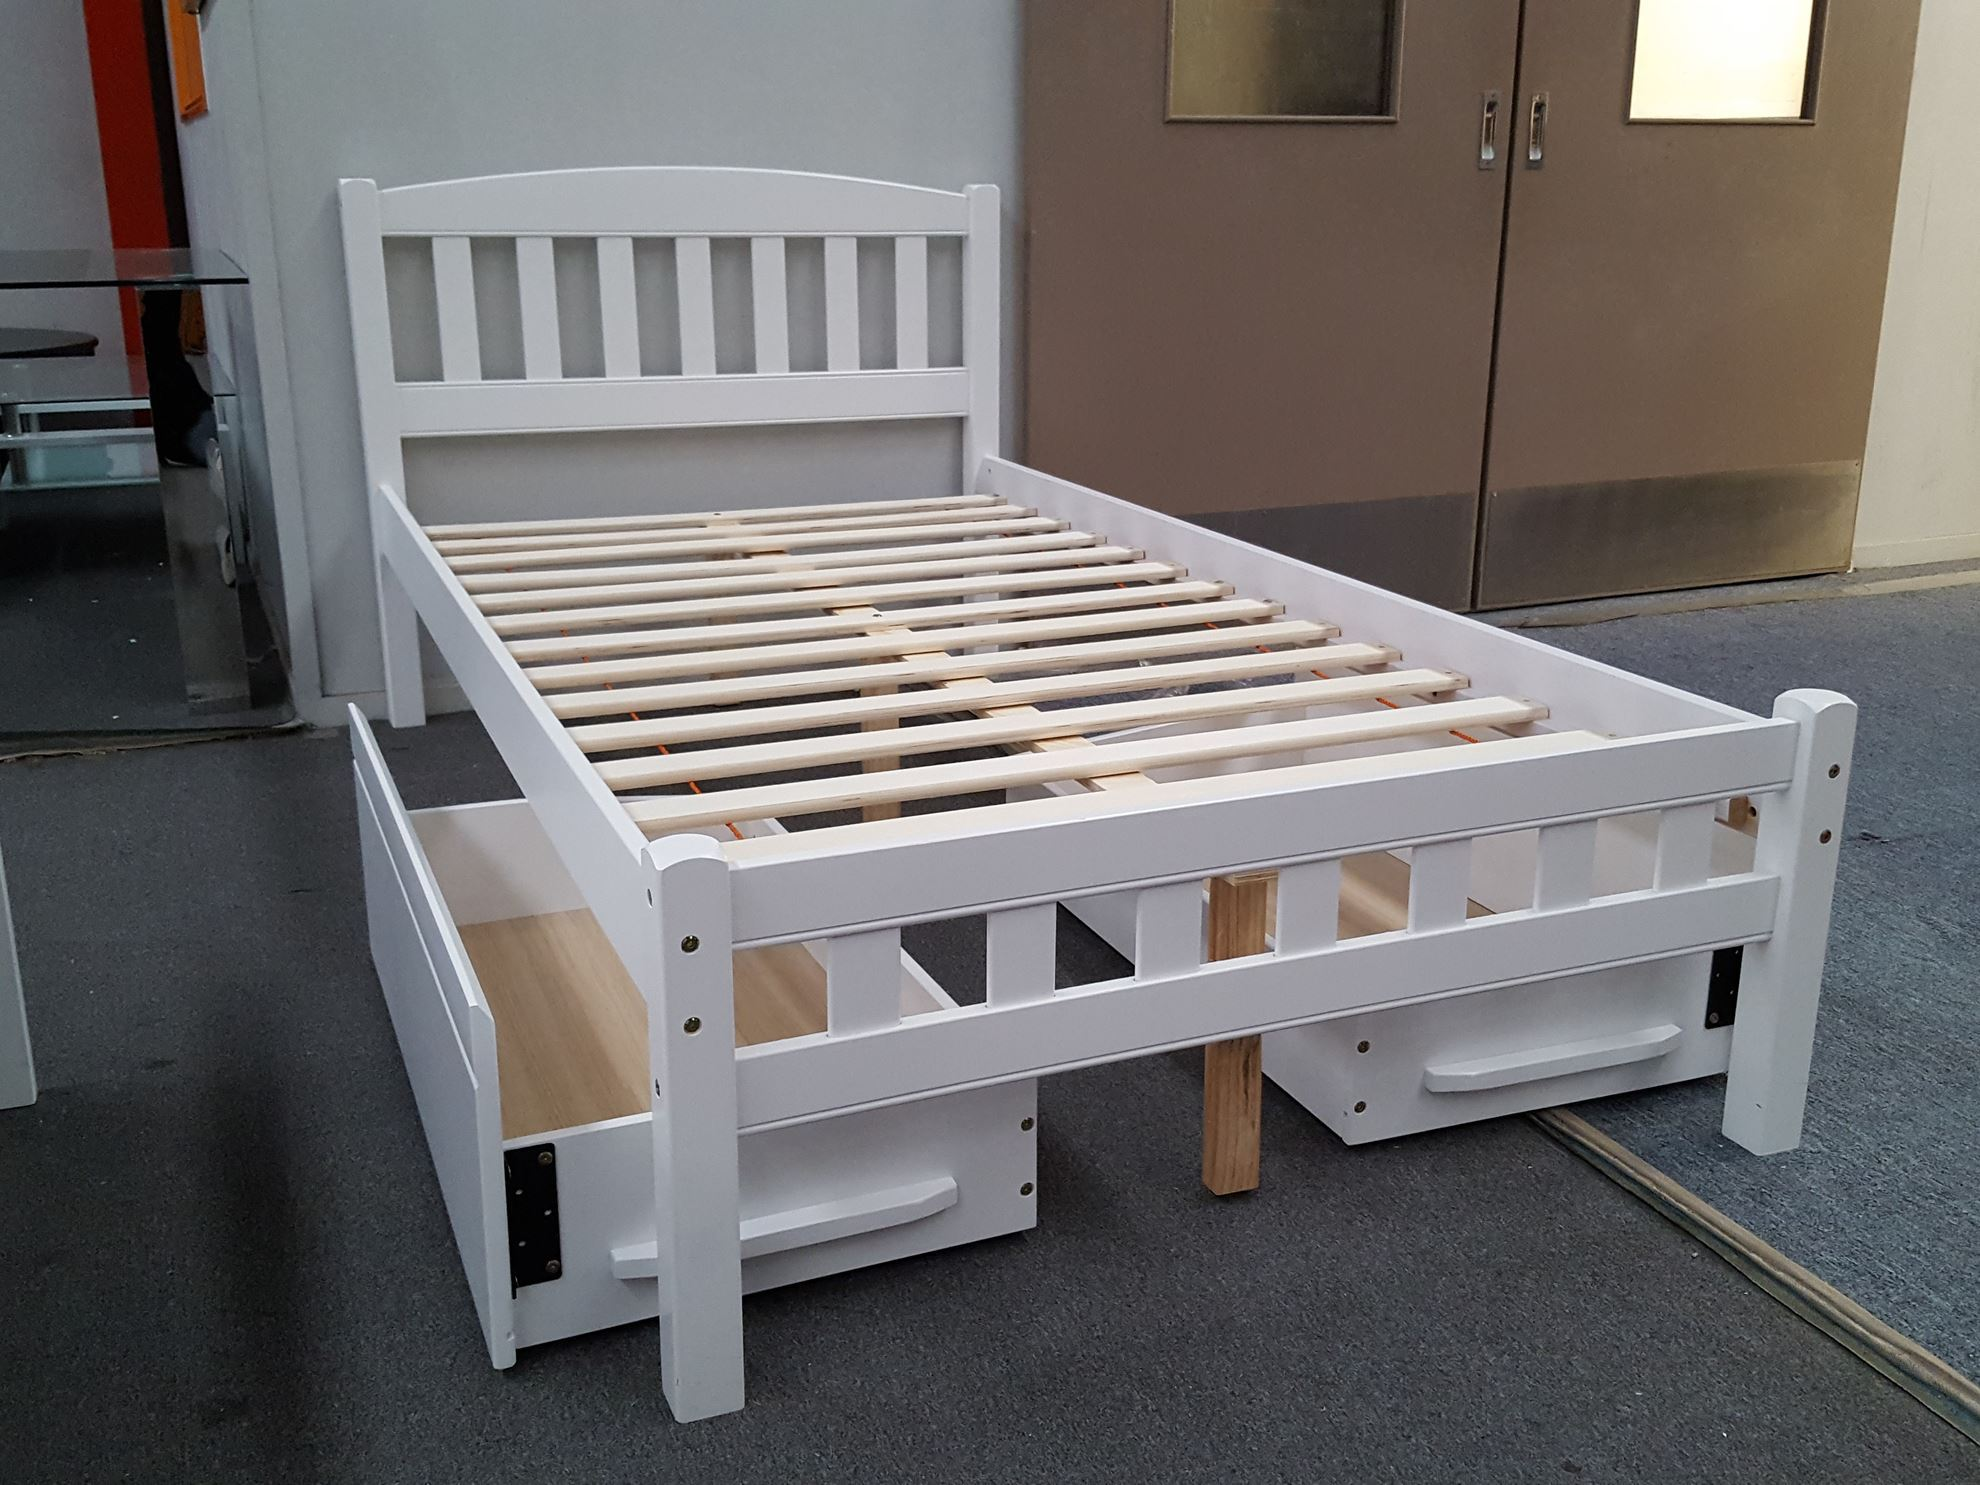 Furniture Place Zara King Single Bed In White With 2x Drawers